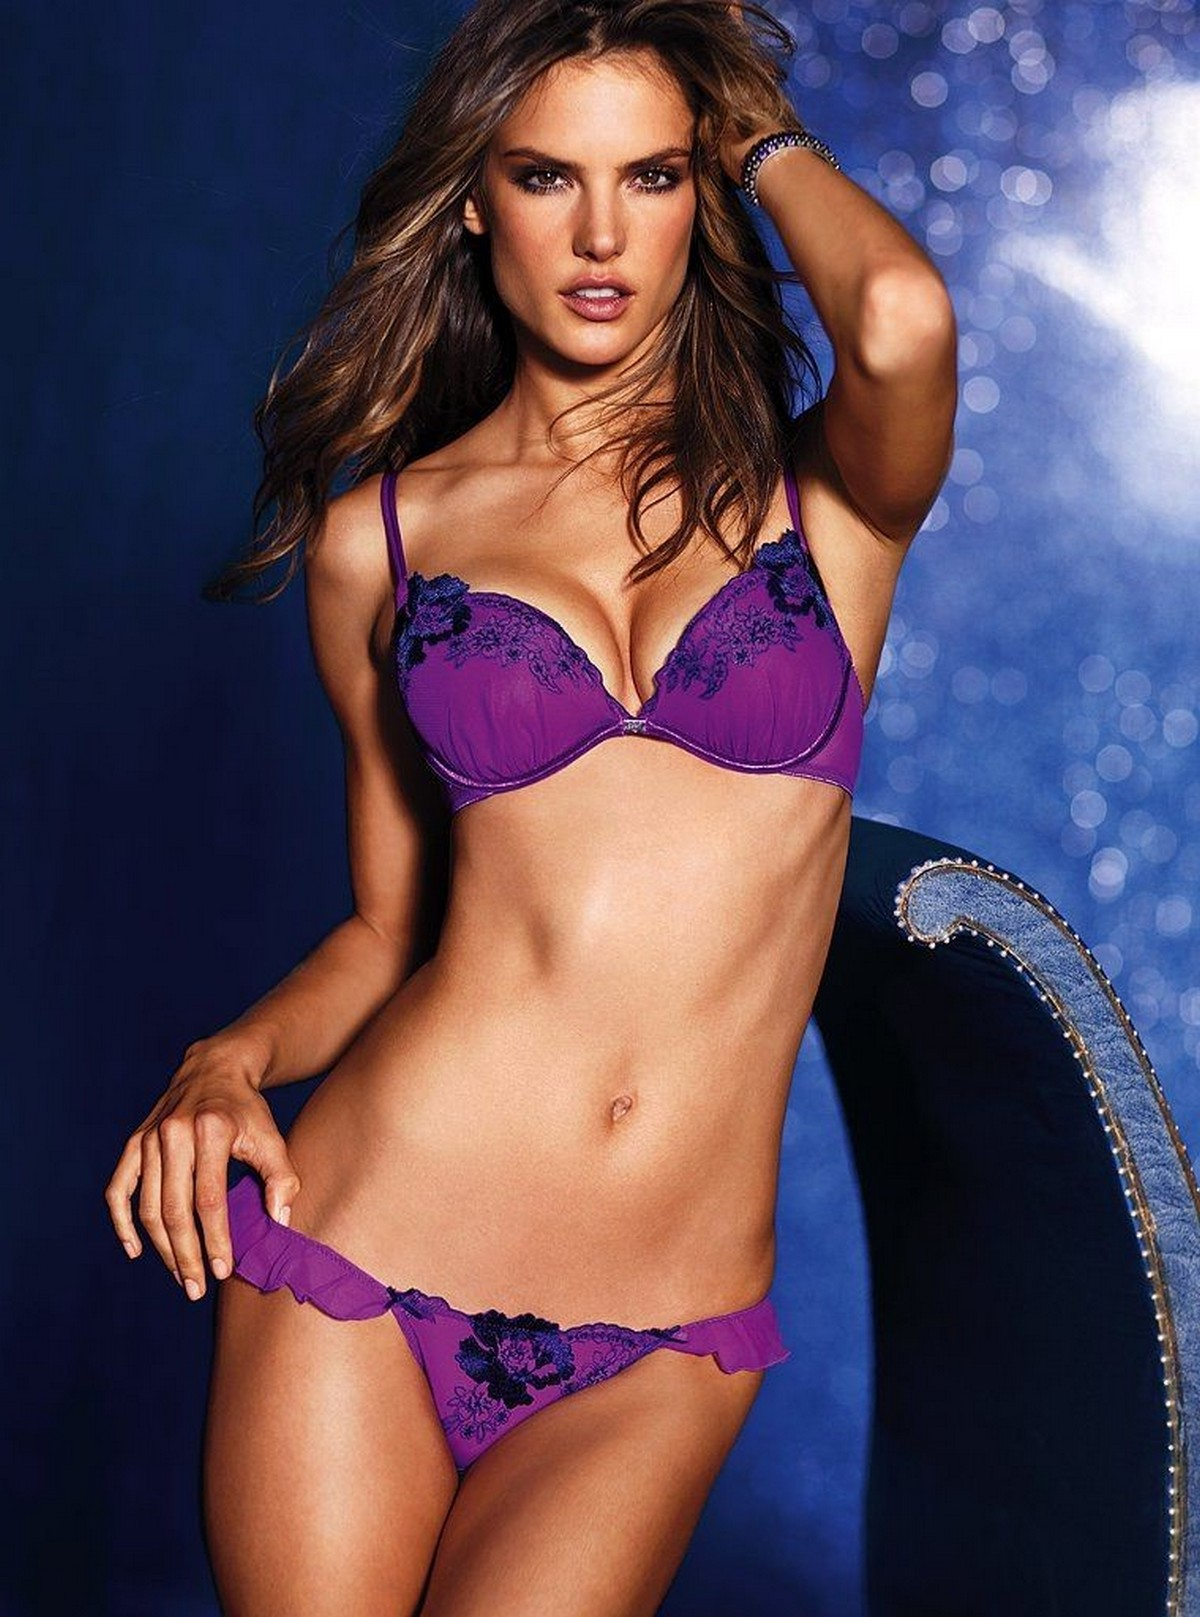 the dude porn